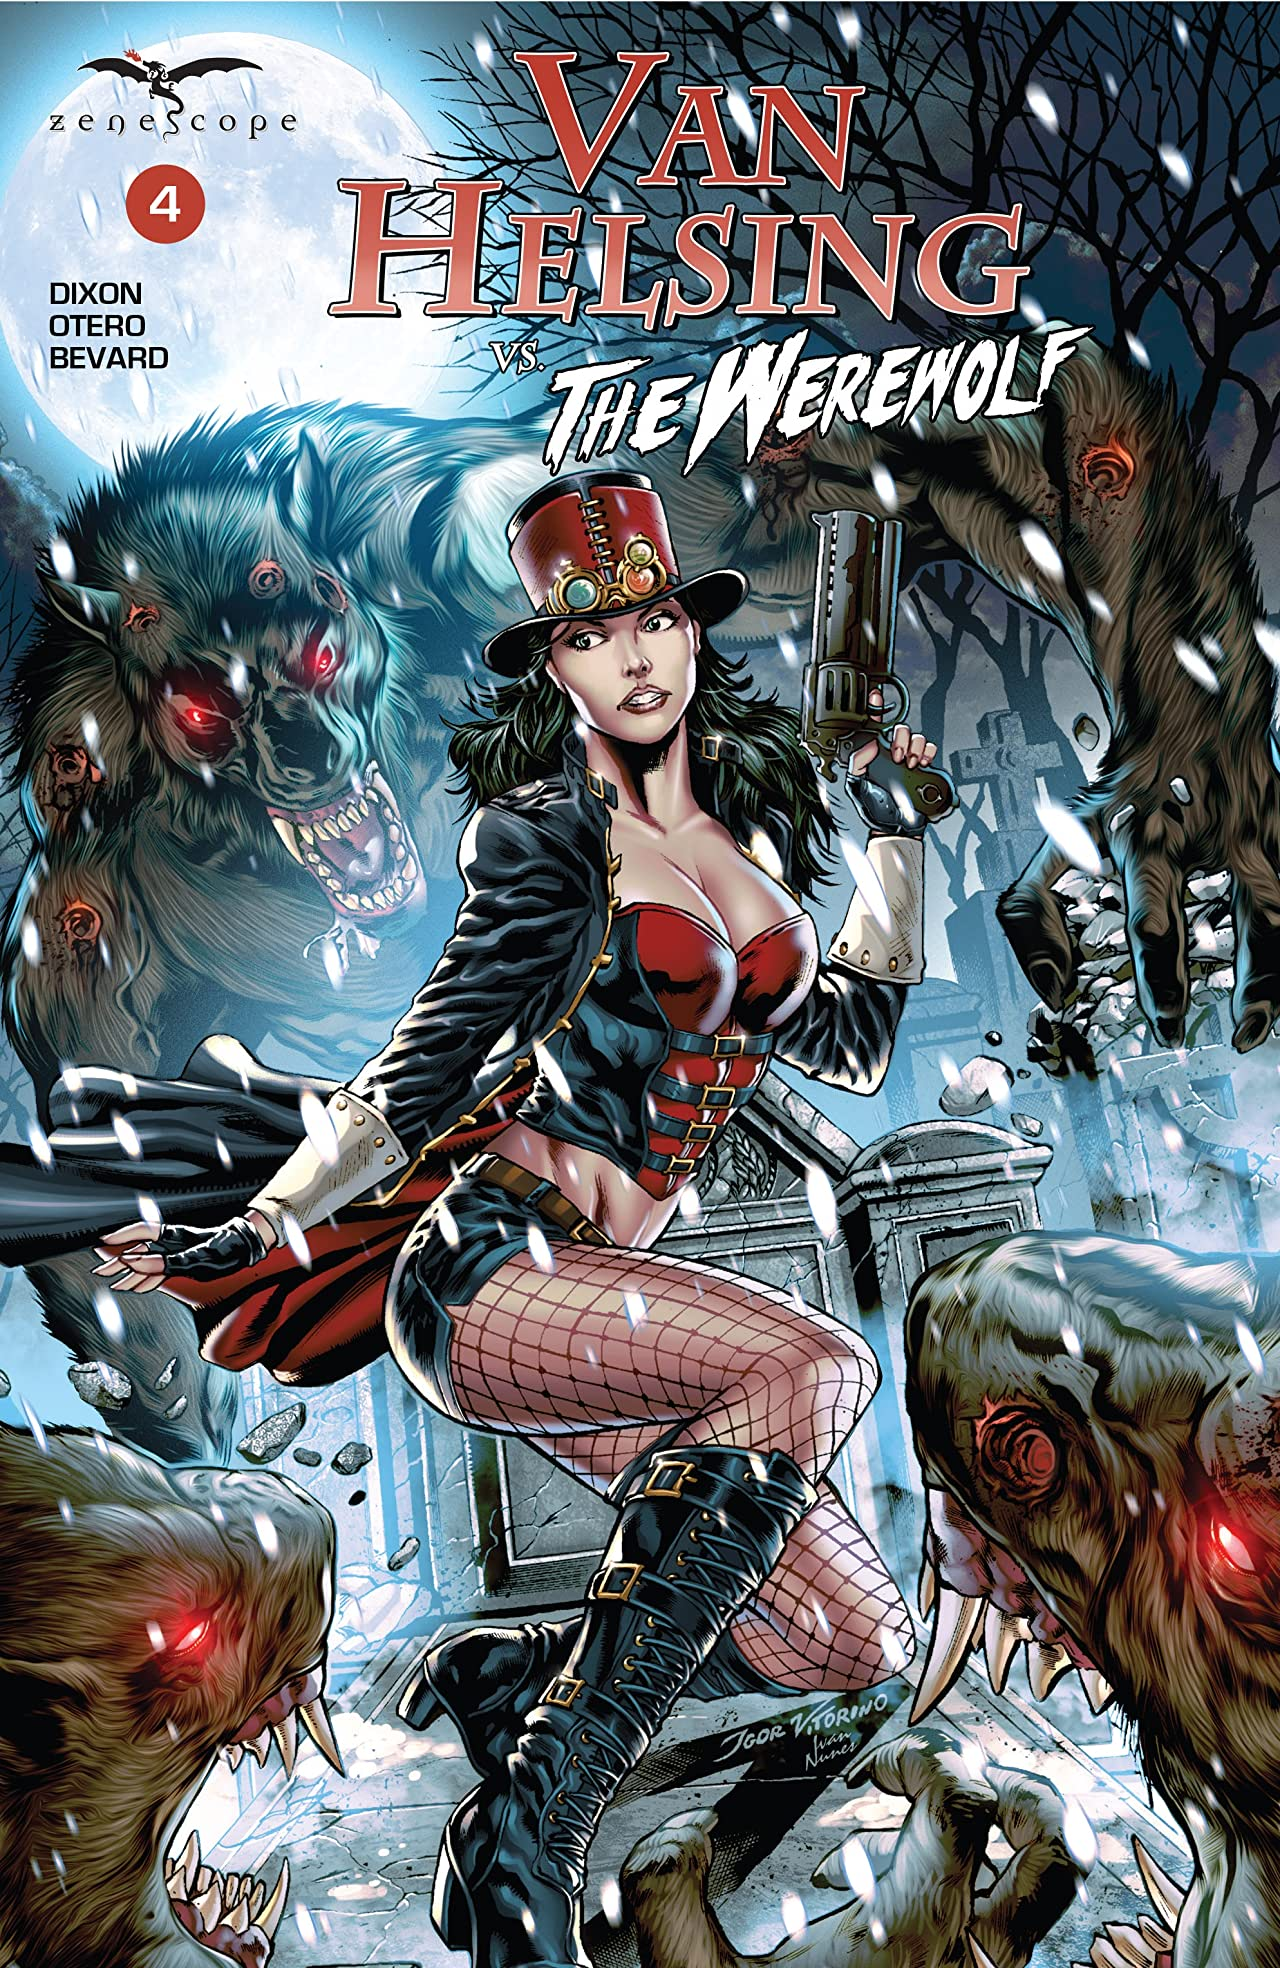 Van Helsing vs. The Werewolf #4